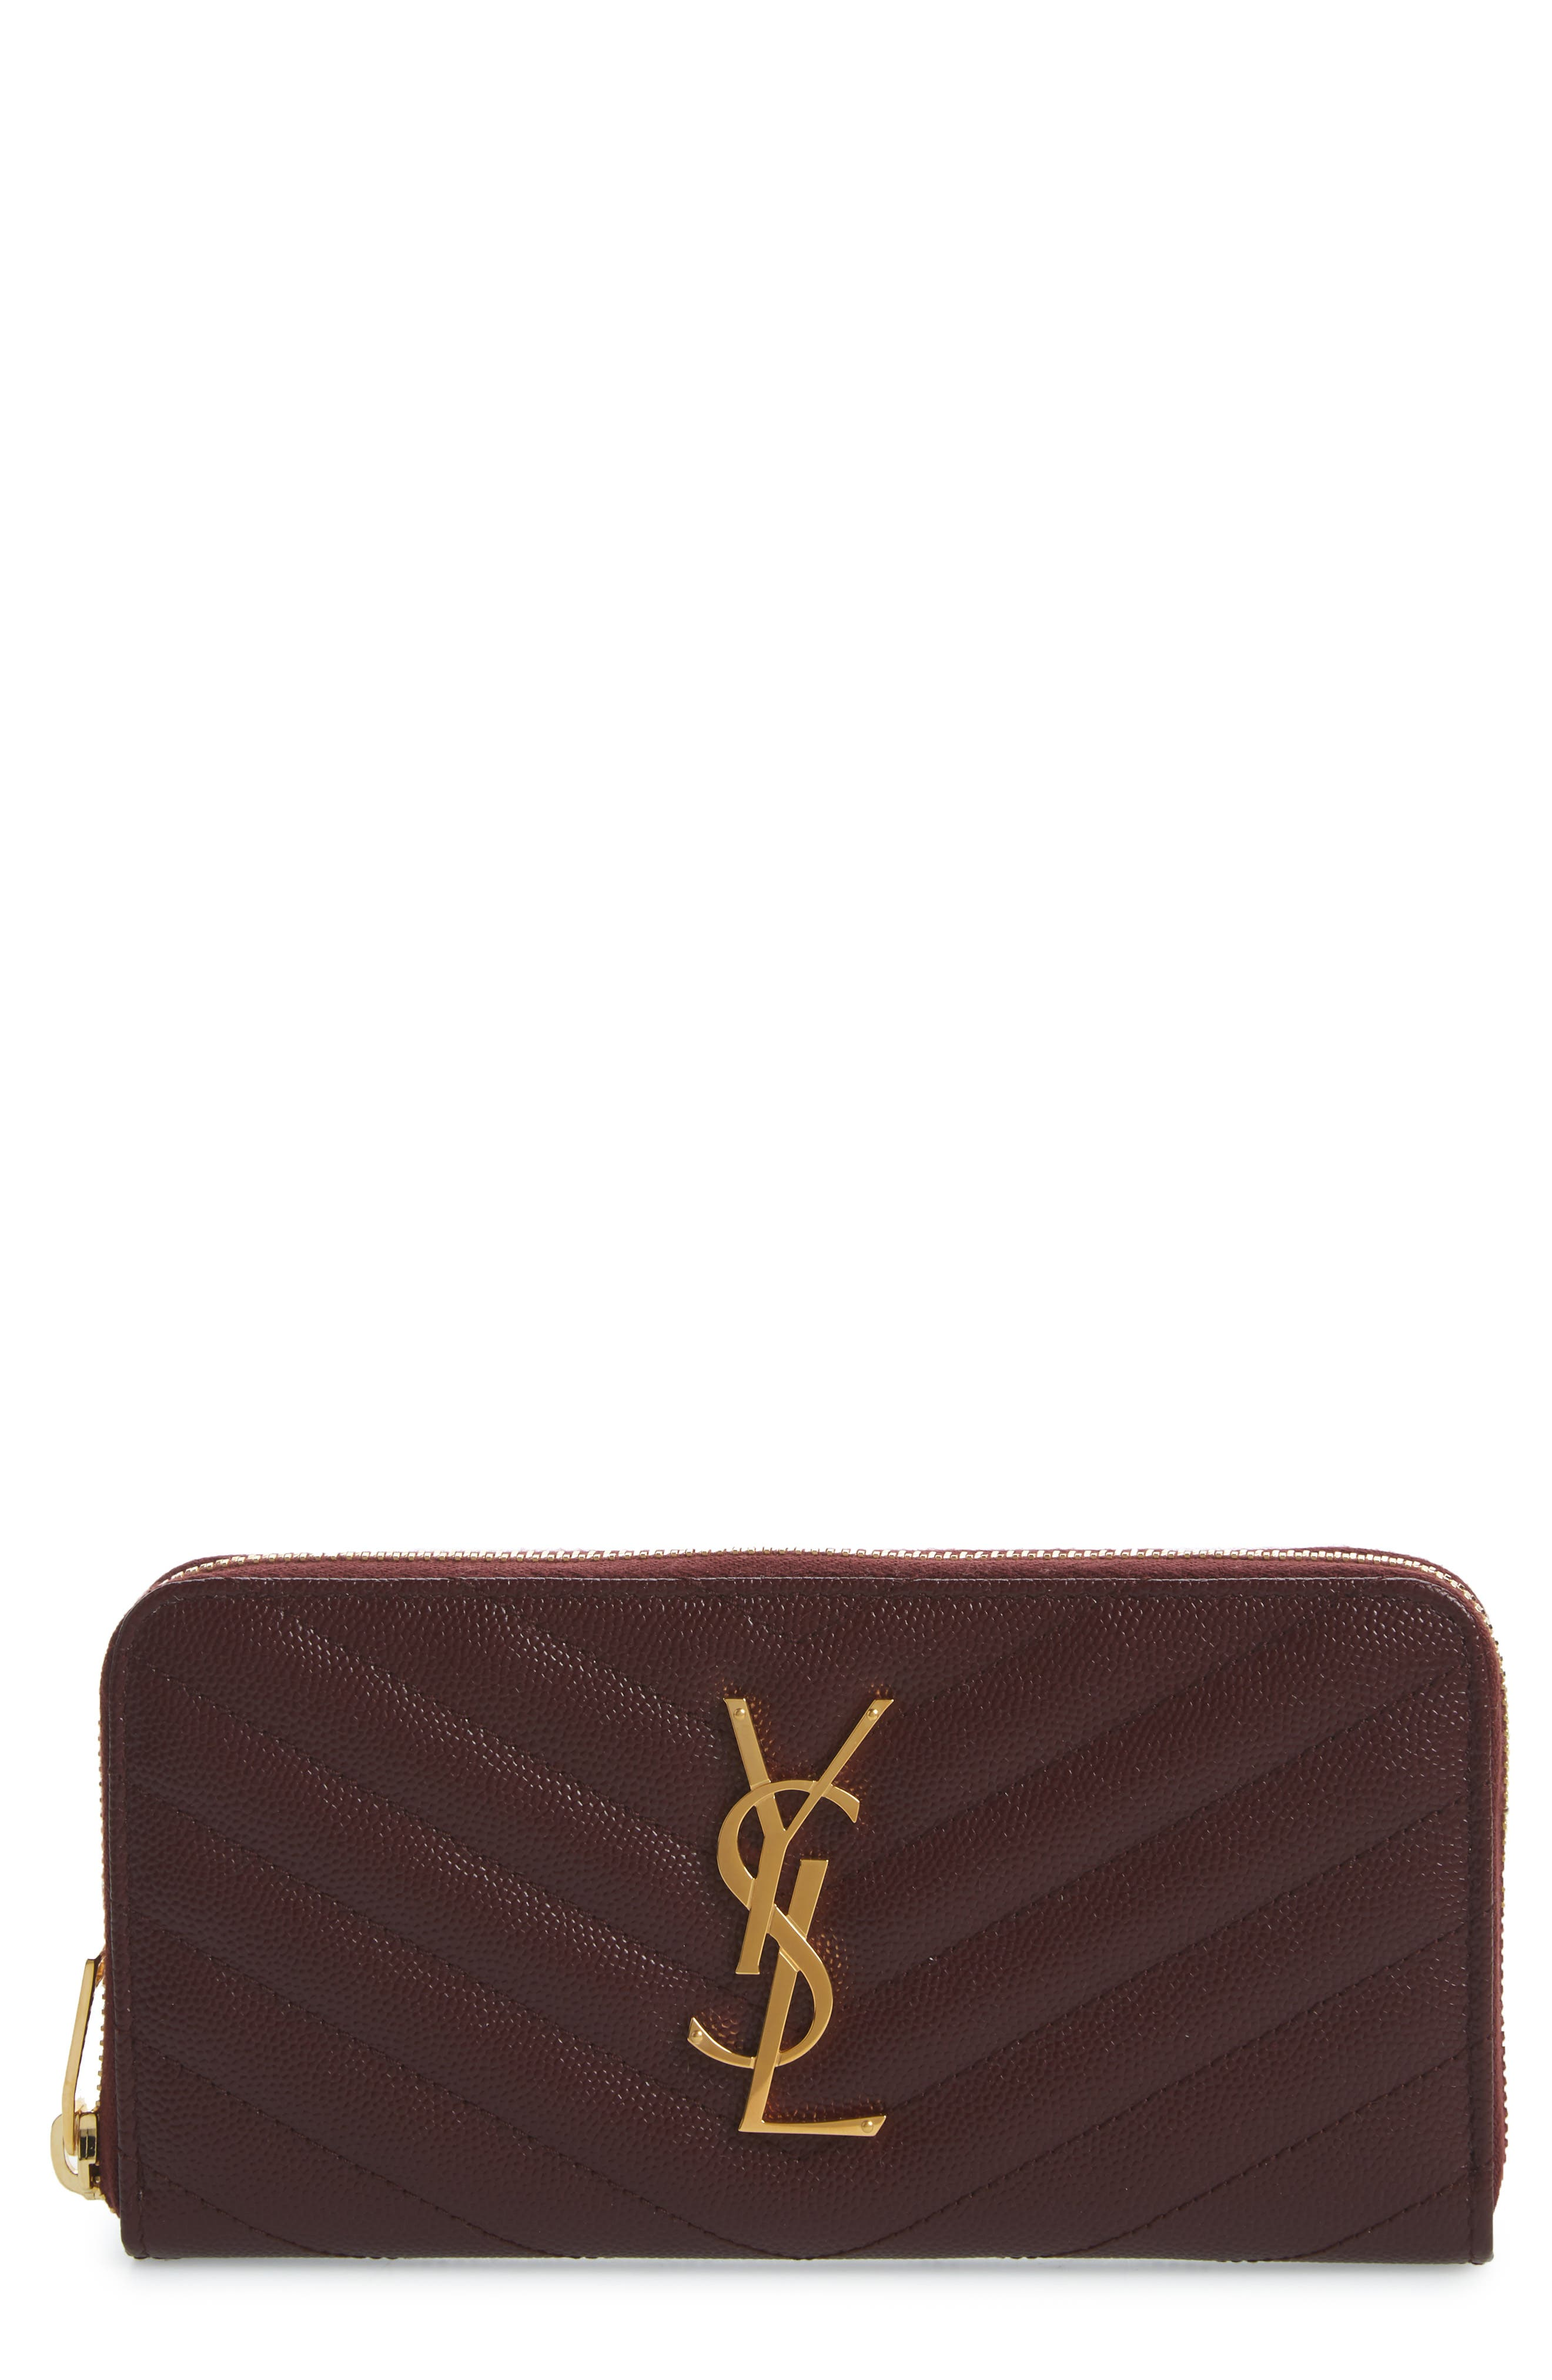 'Monogram' Quilted Leather Wallet,                         Main,                         color, ROUGE LEGION